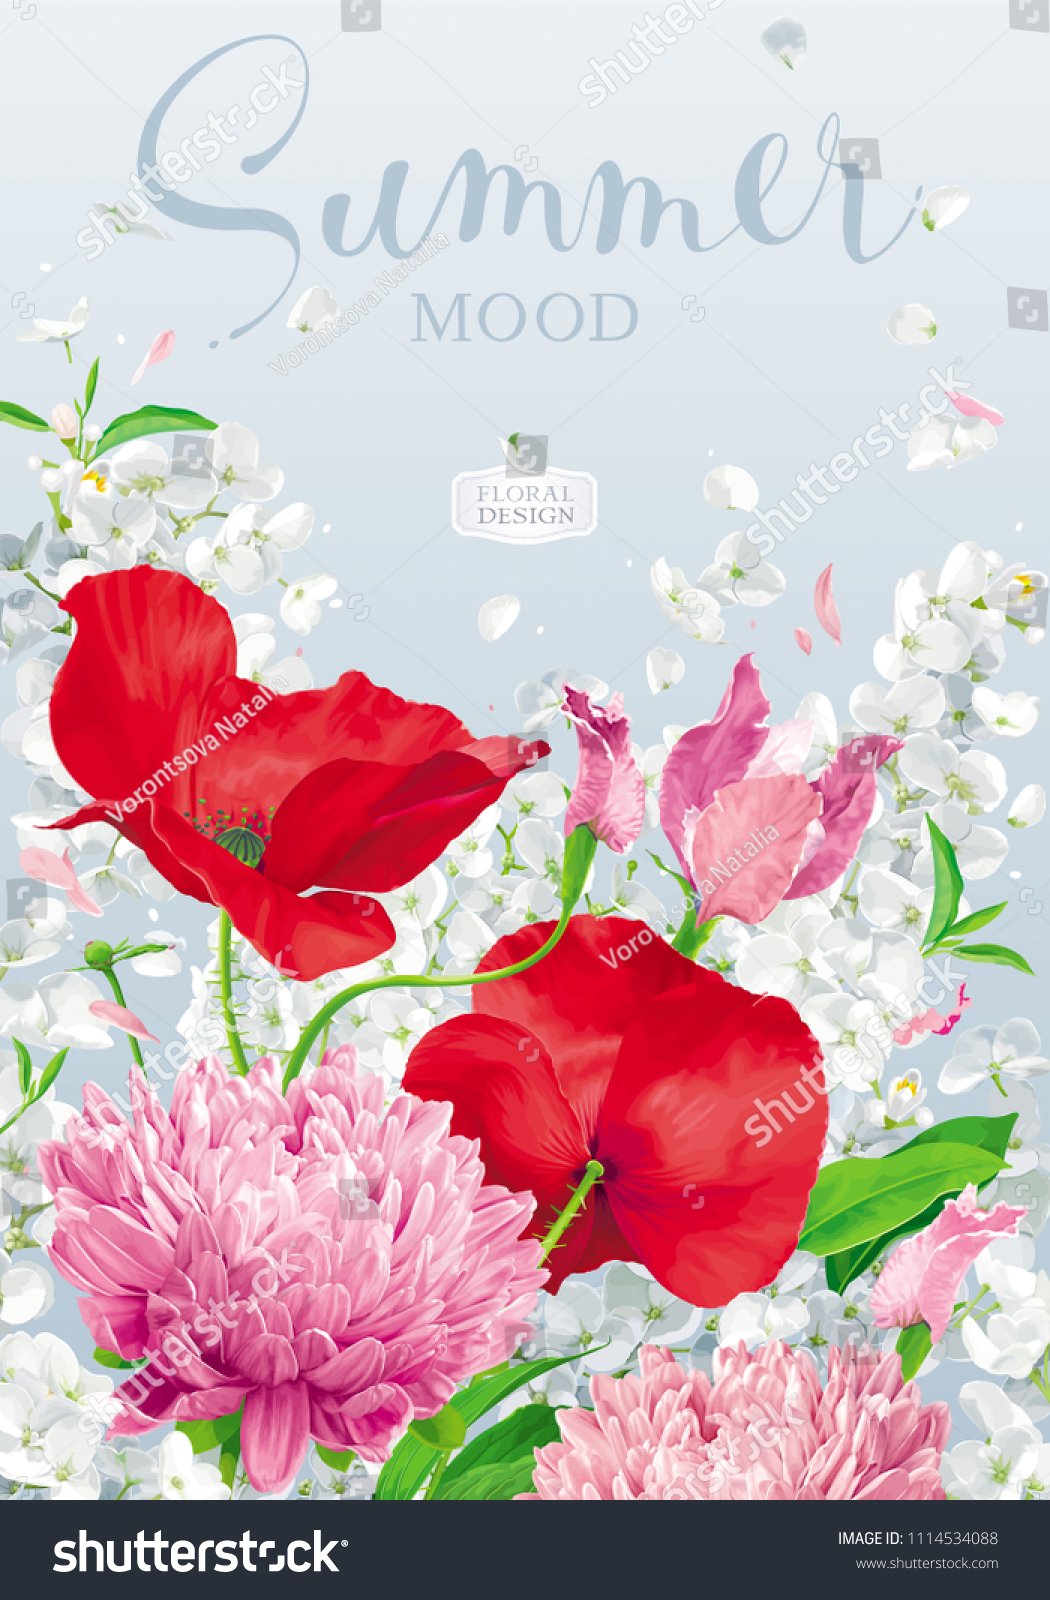 Vintage Floral Vector Background Chrysanthemums Poppies Stock Vector ...